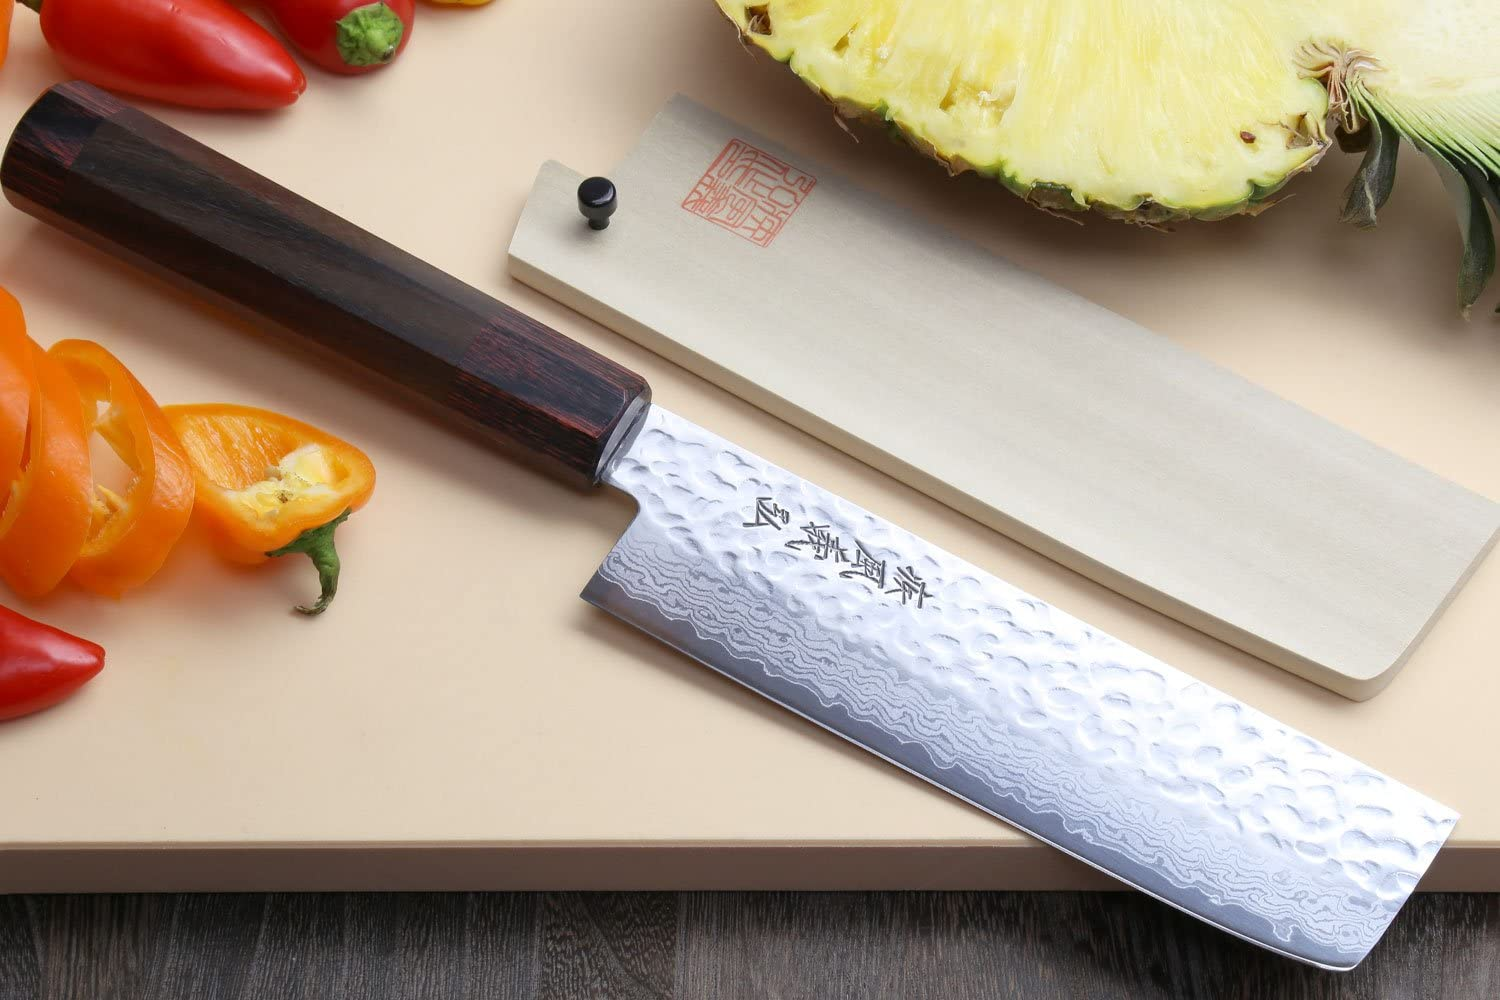 Best usuba square knife for chefs- Yoshihiro NSW 46 Layers on cutting board